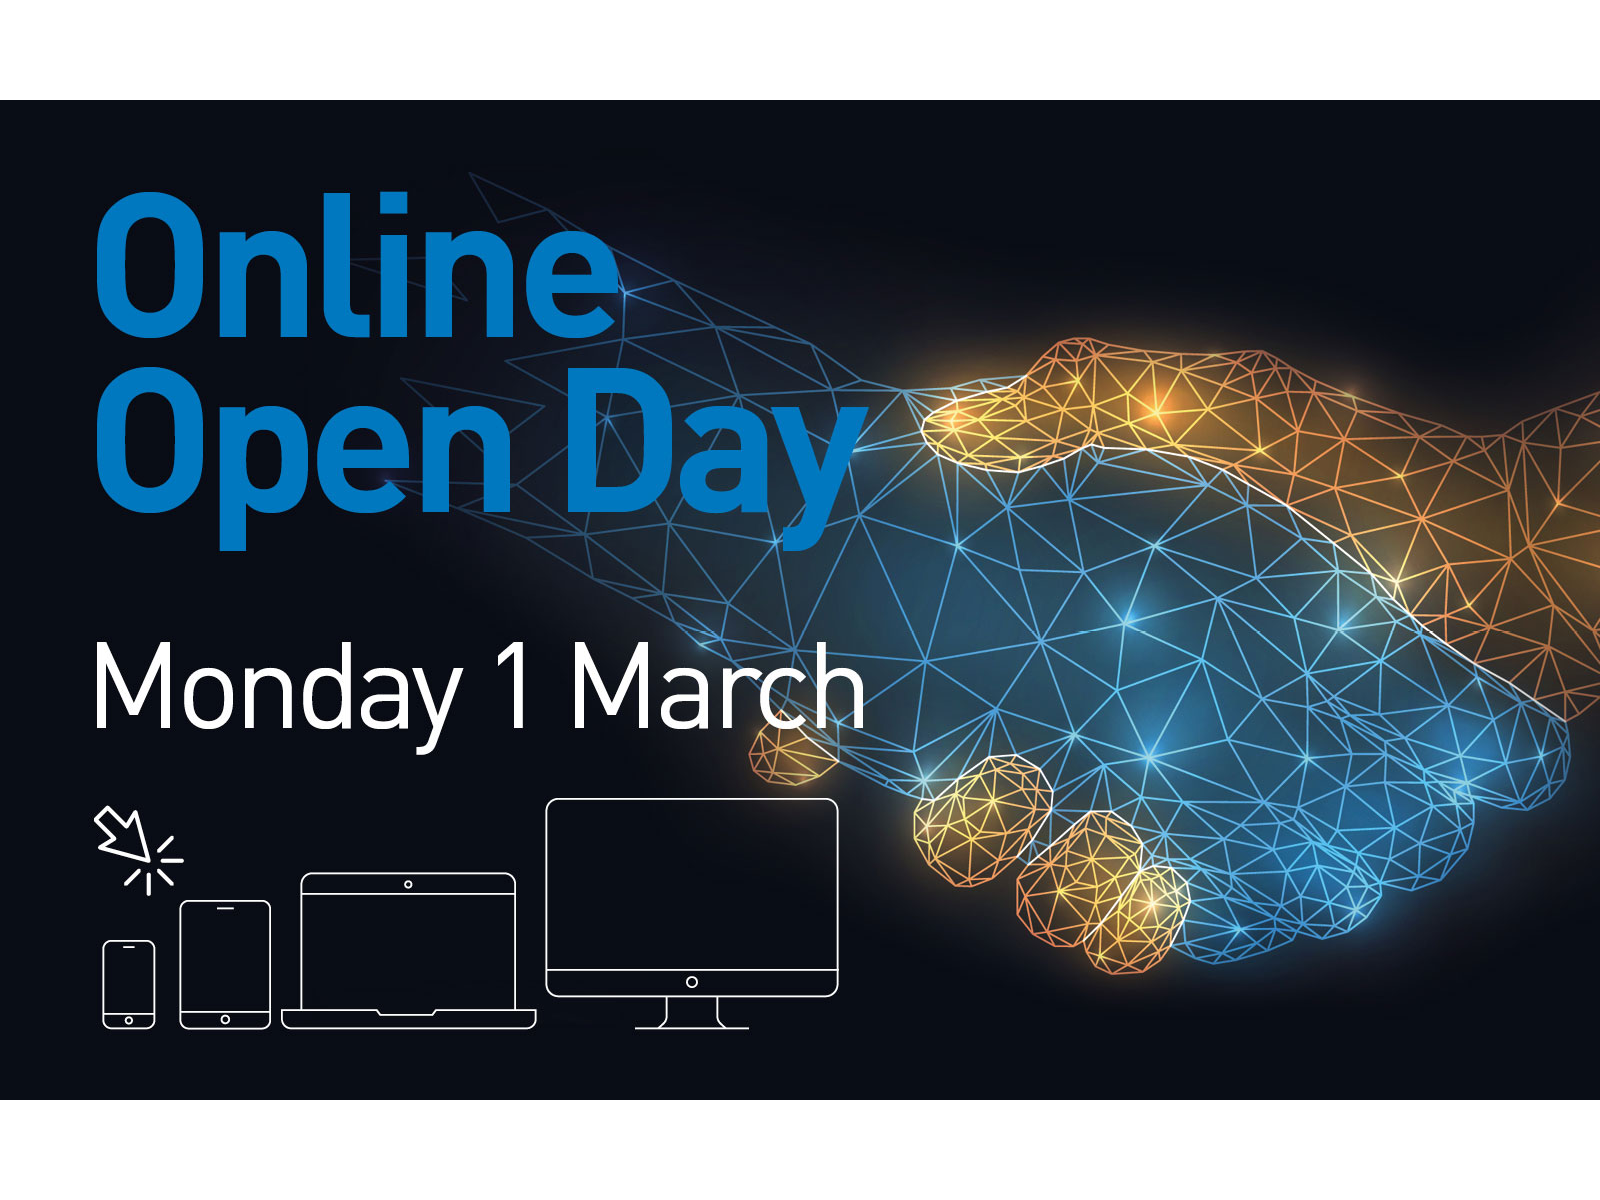 Online open day - Monday 1 March